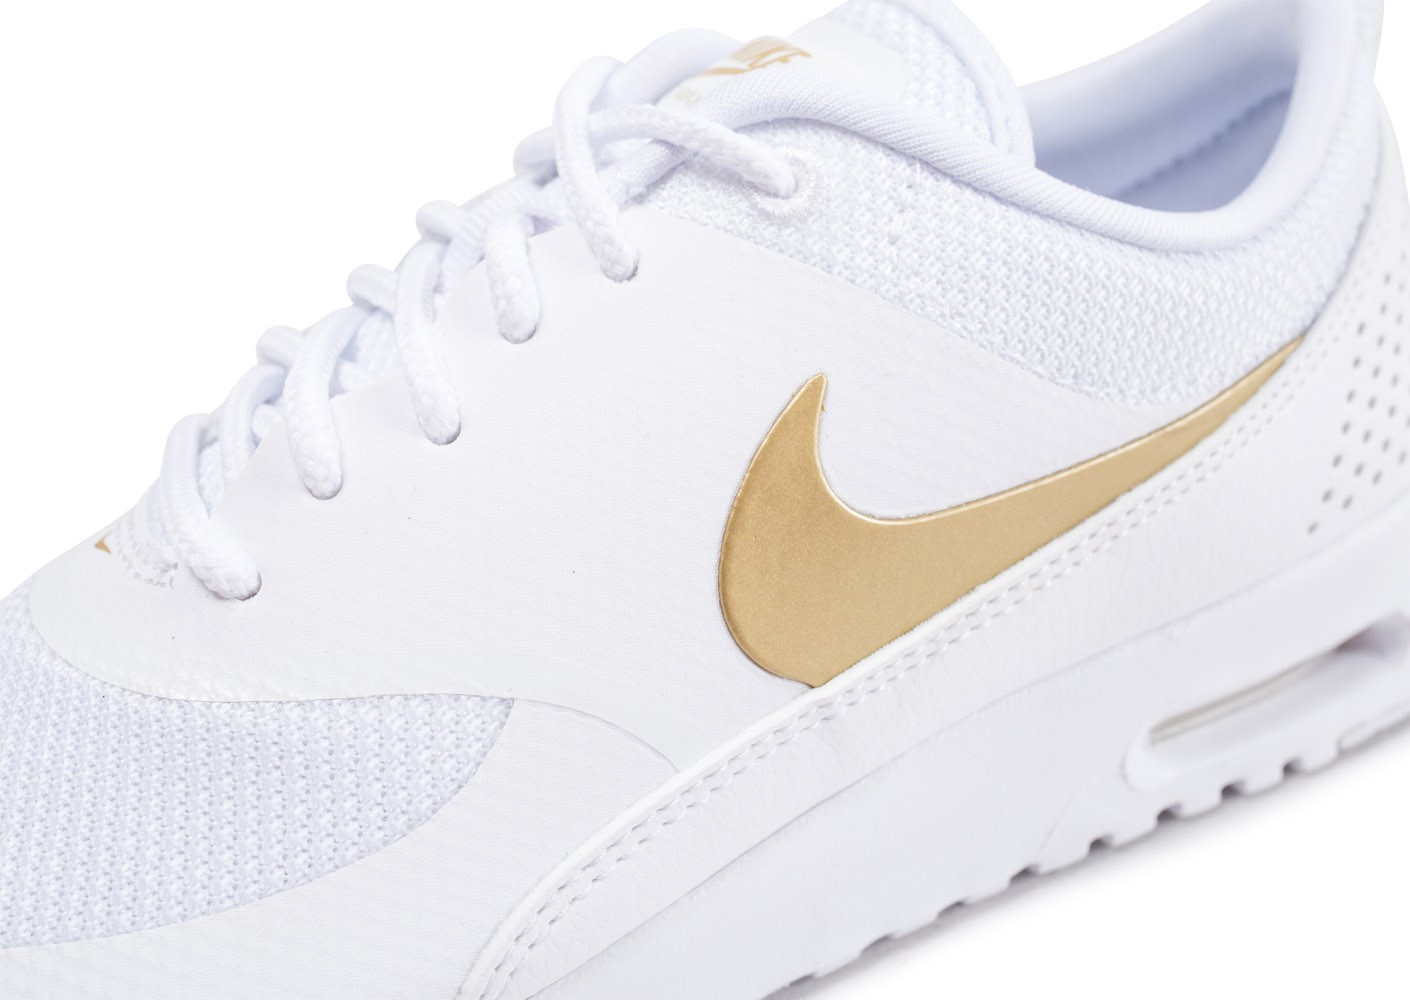 Nike Air Max Thea blanche et or - Chaussures Baskets femme ...